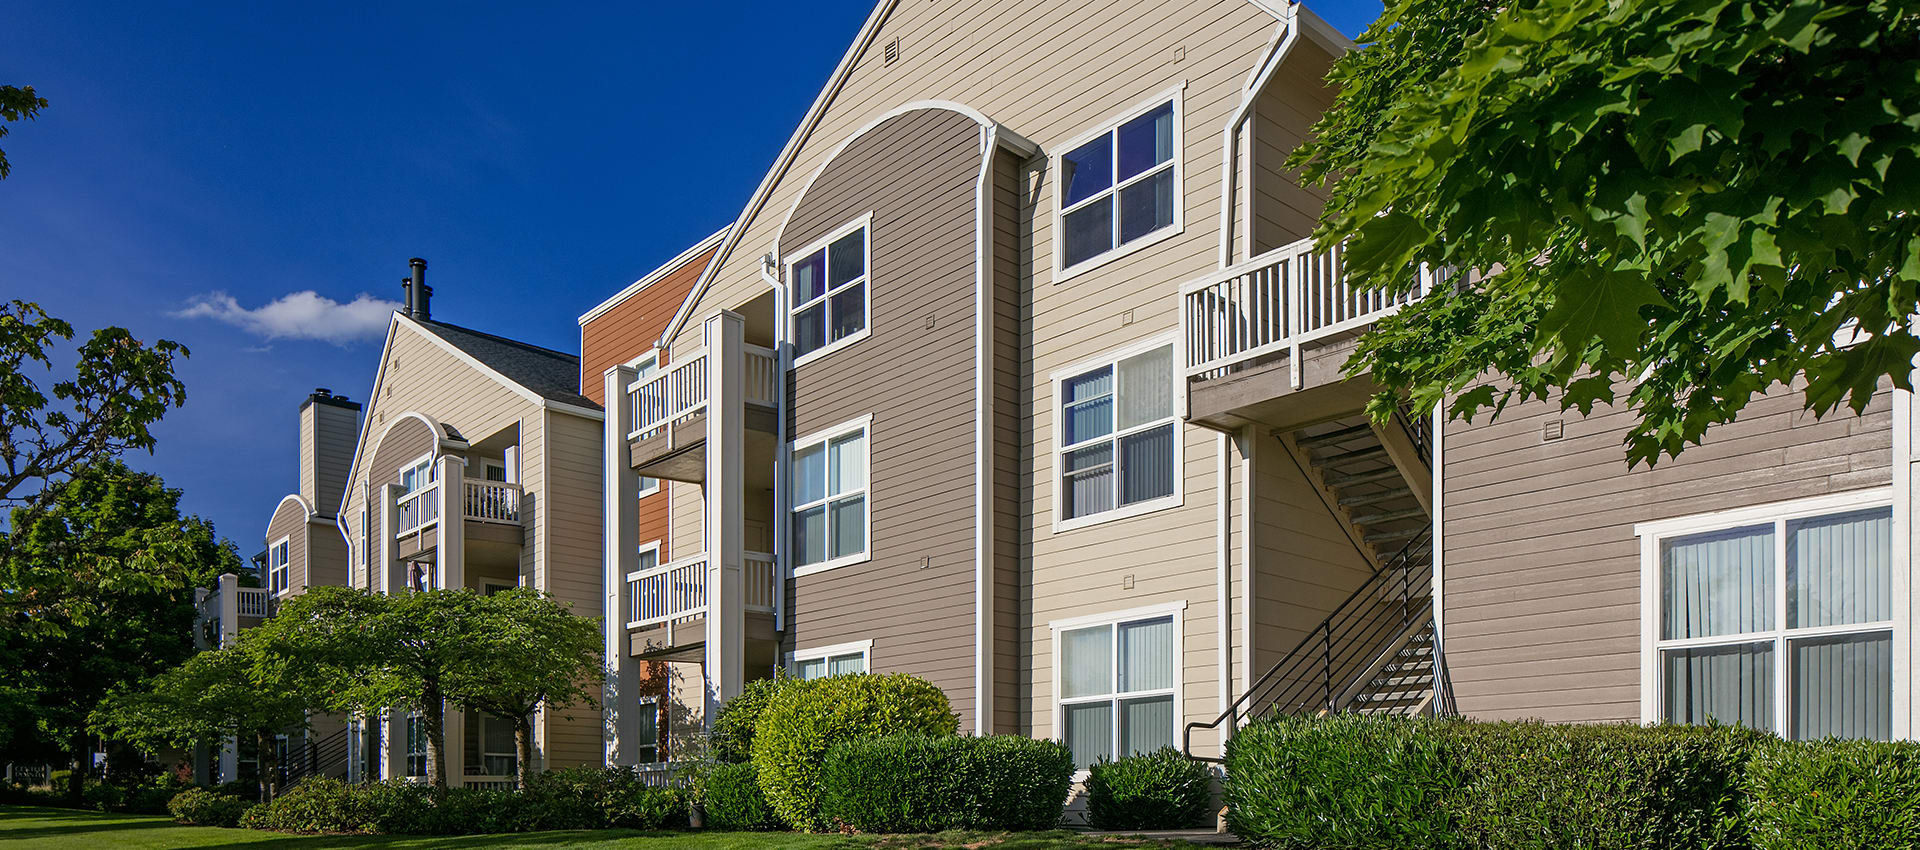 Contact Center Pointe Apartment Homes on our website